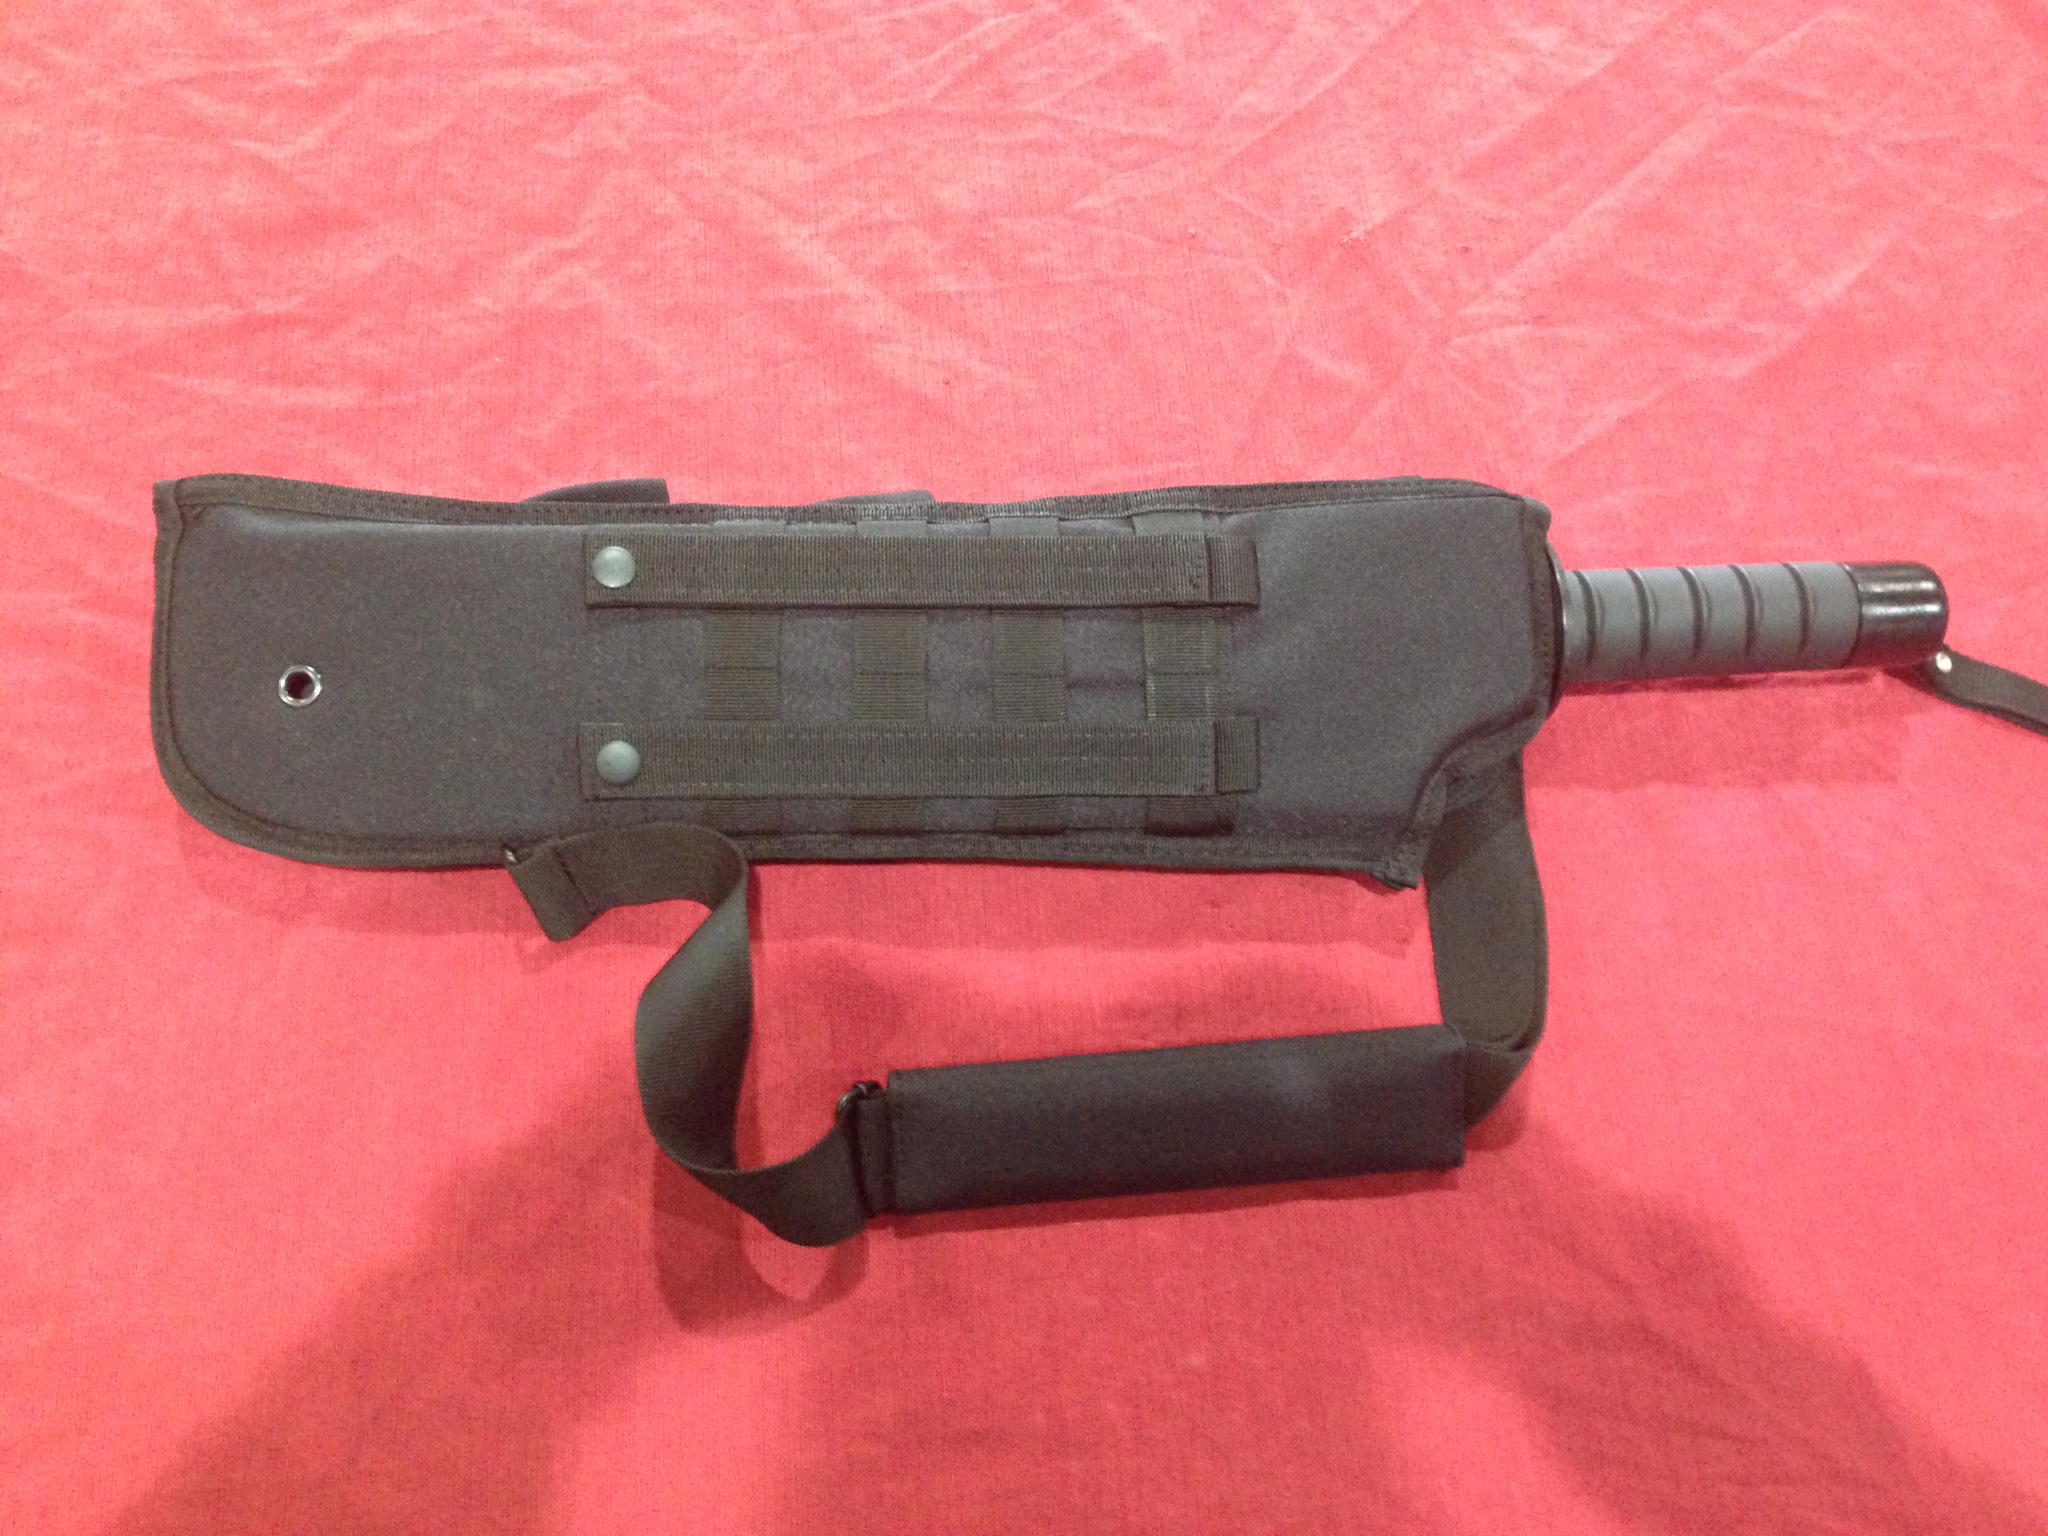 THE O-MEGA STUN BATON STUN GUN SHEATH